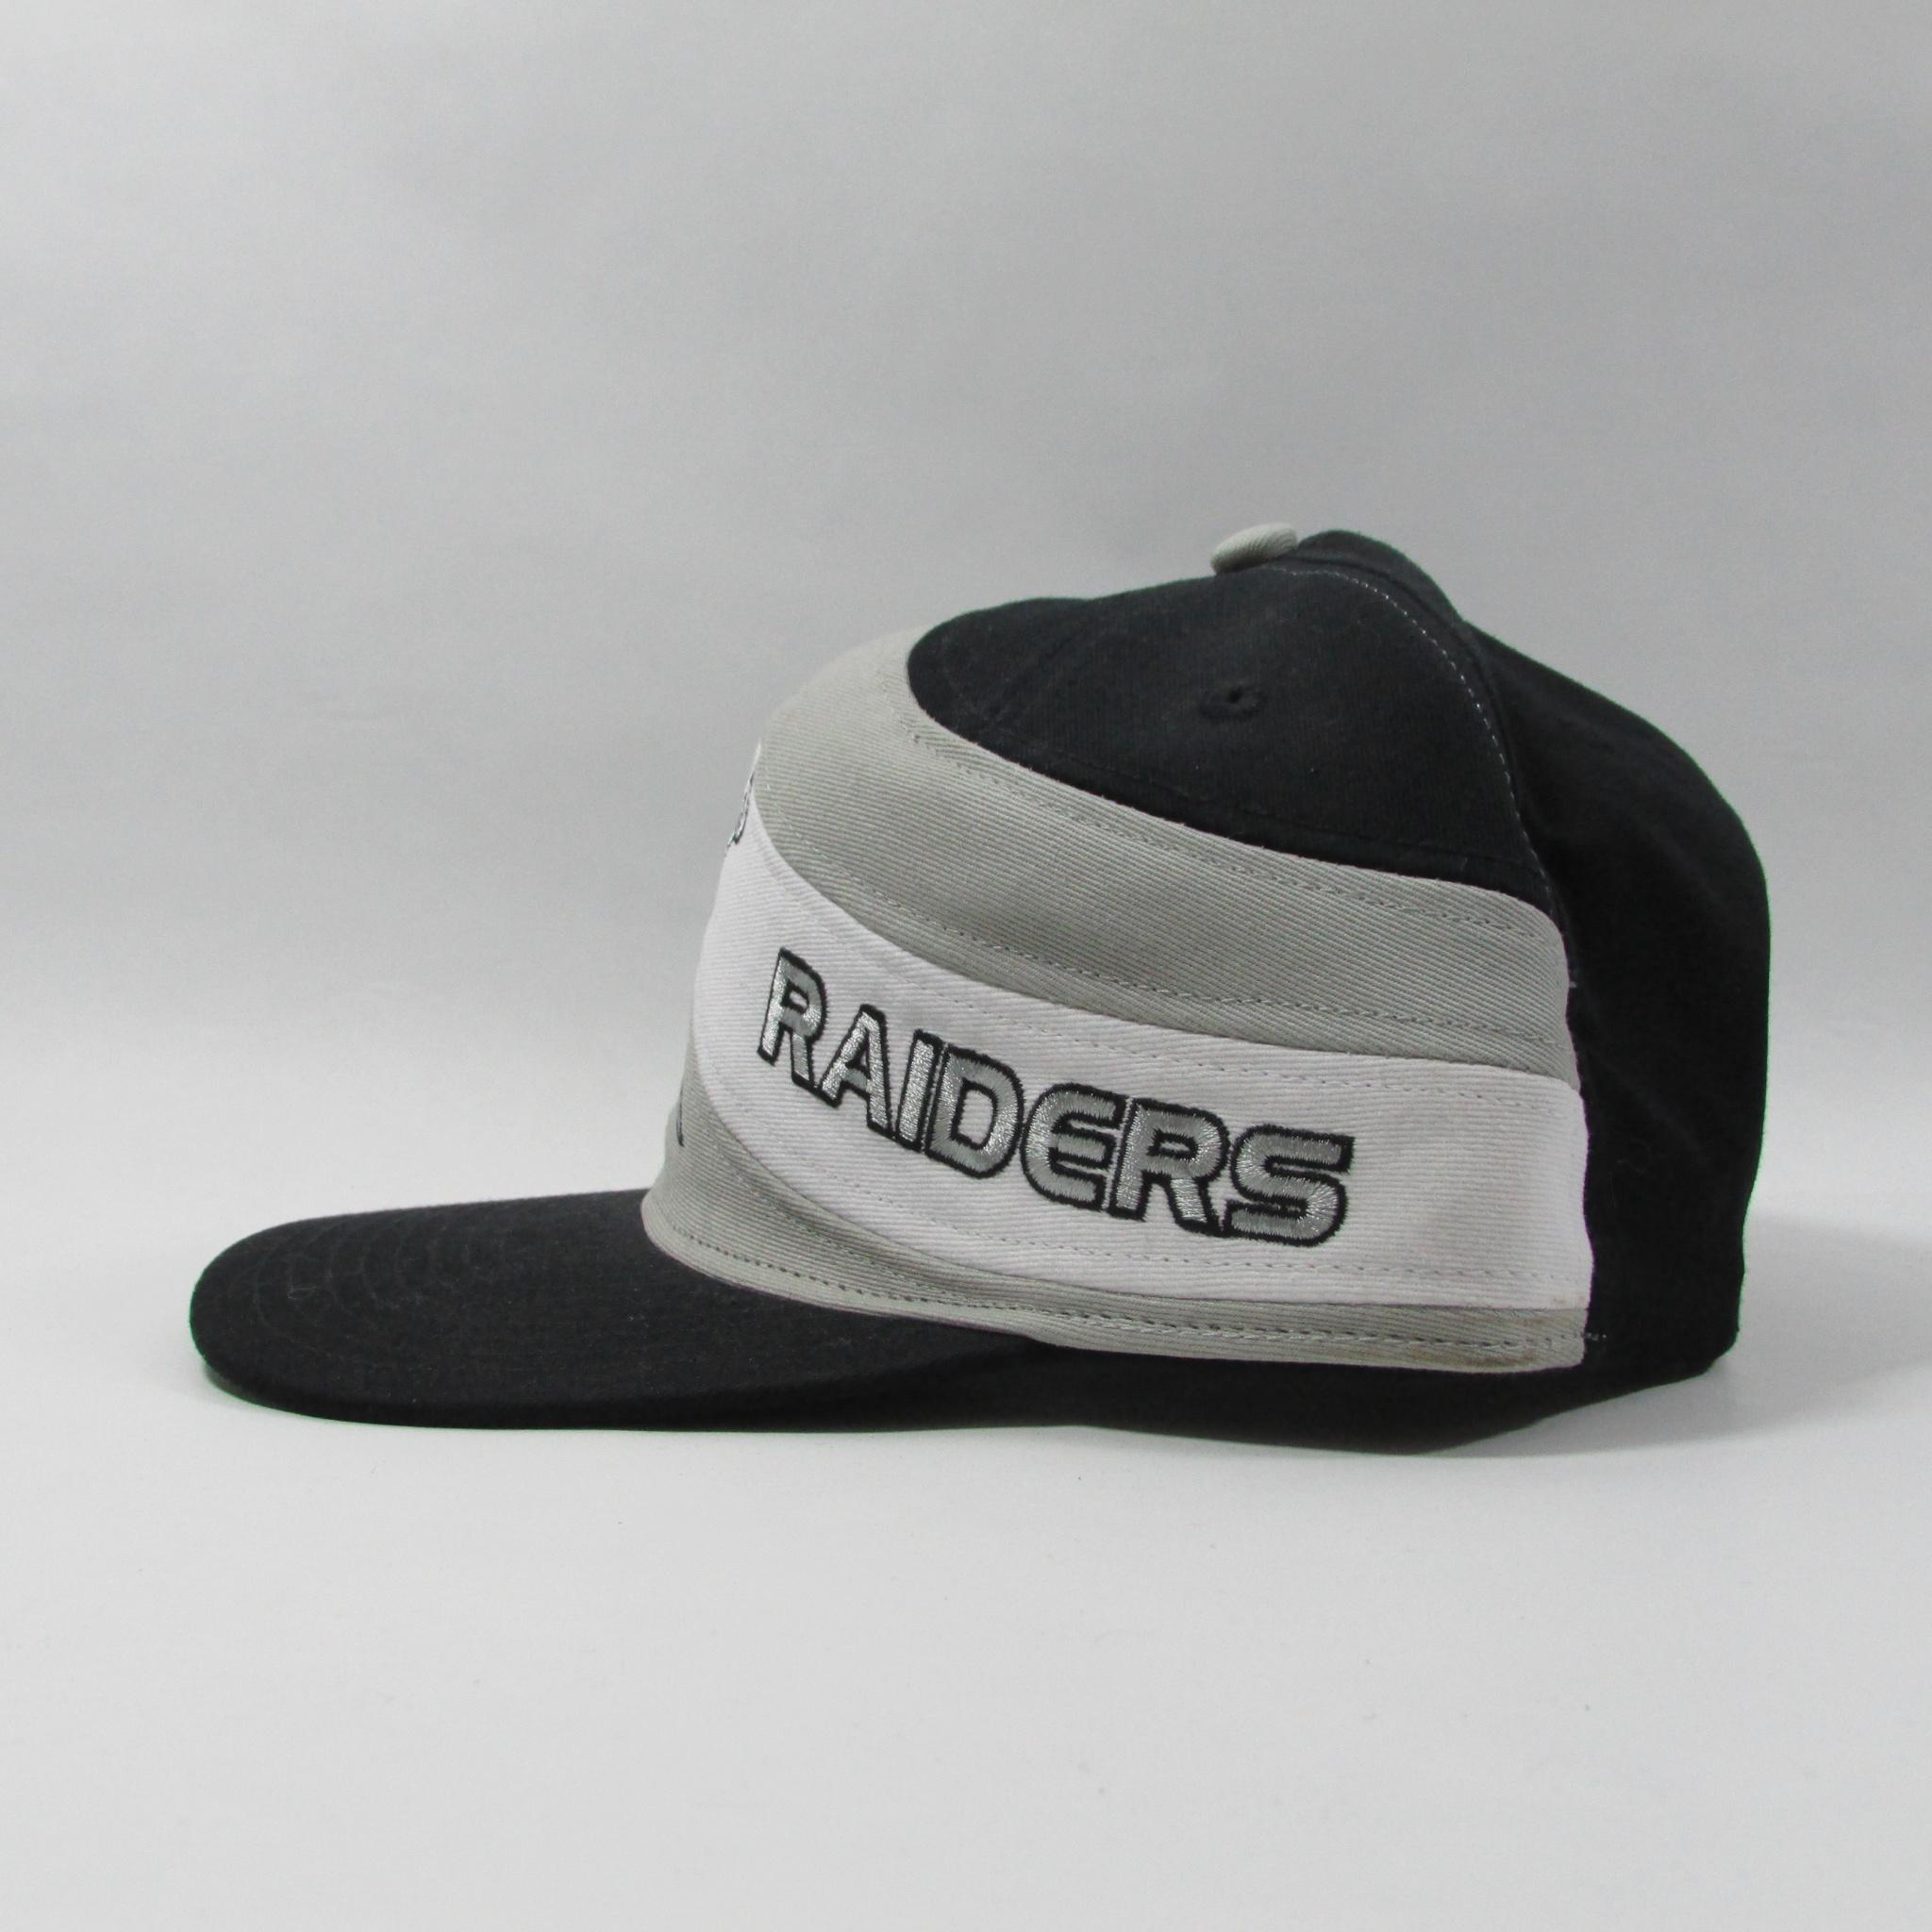 Oakland Raiders Football Snapback Hat w/ Side Swipe Font Vintage